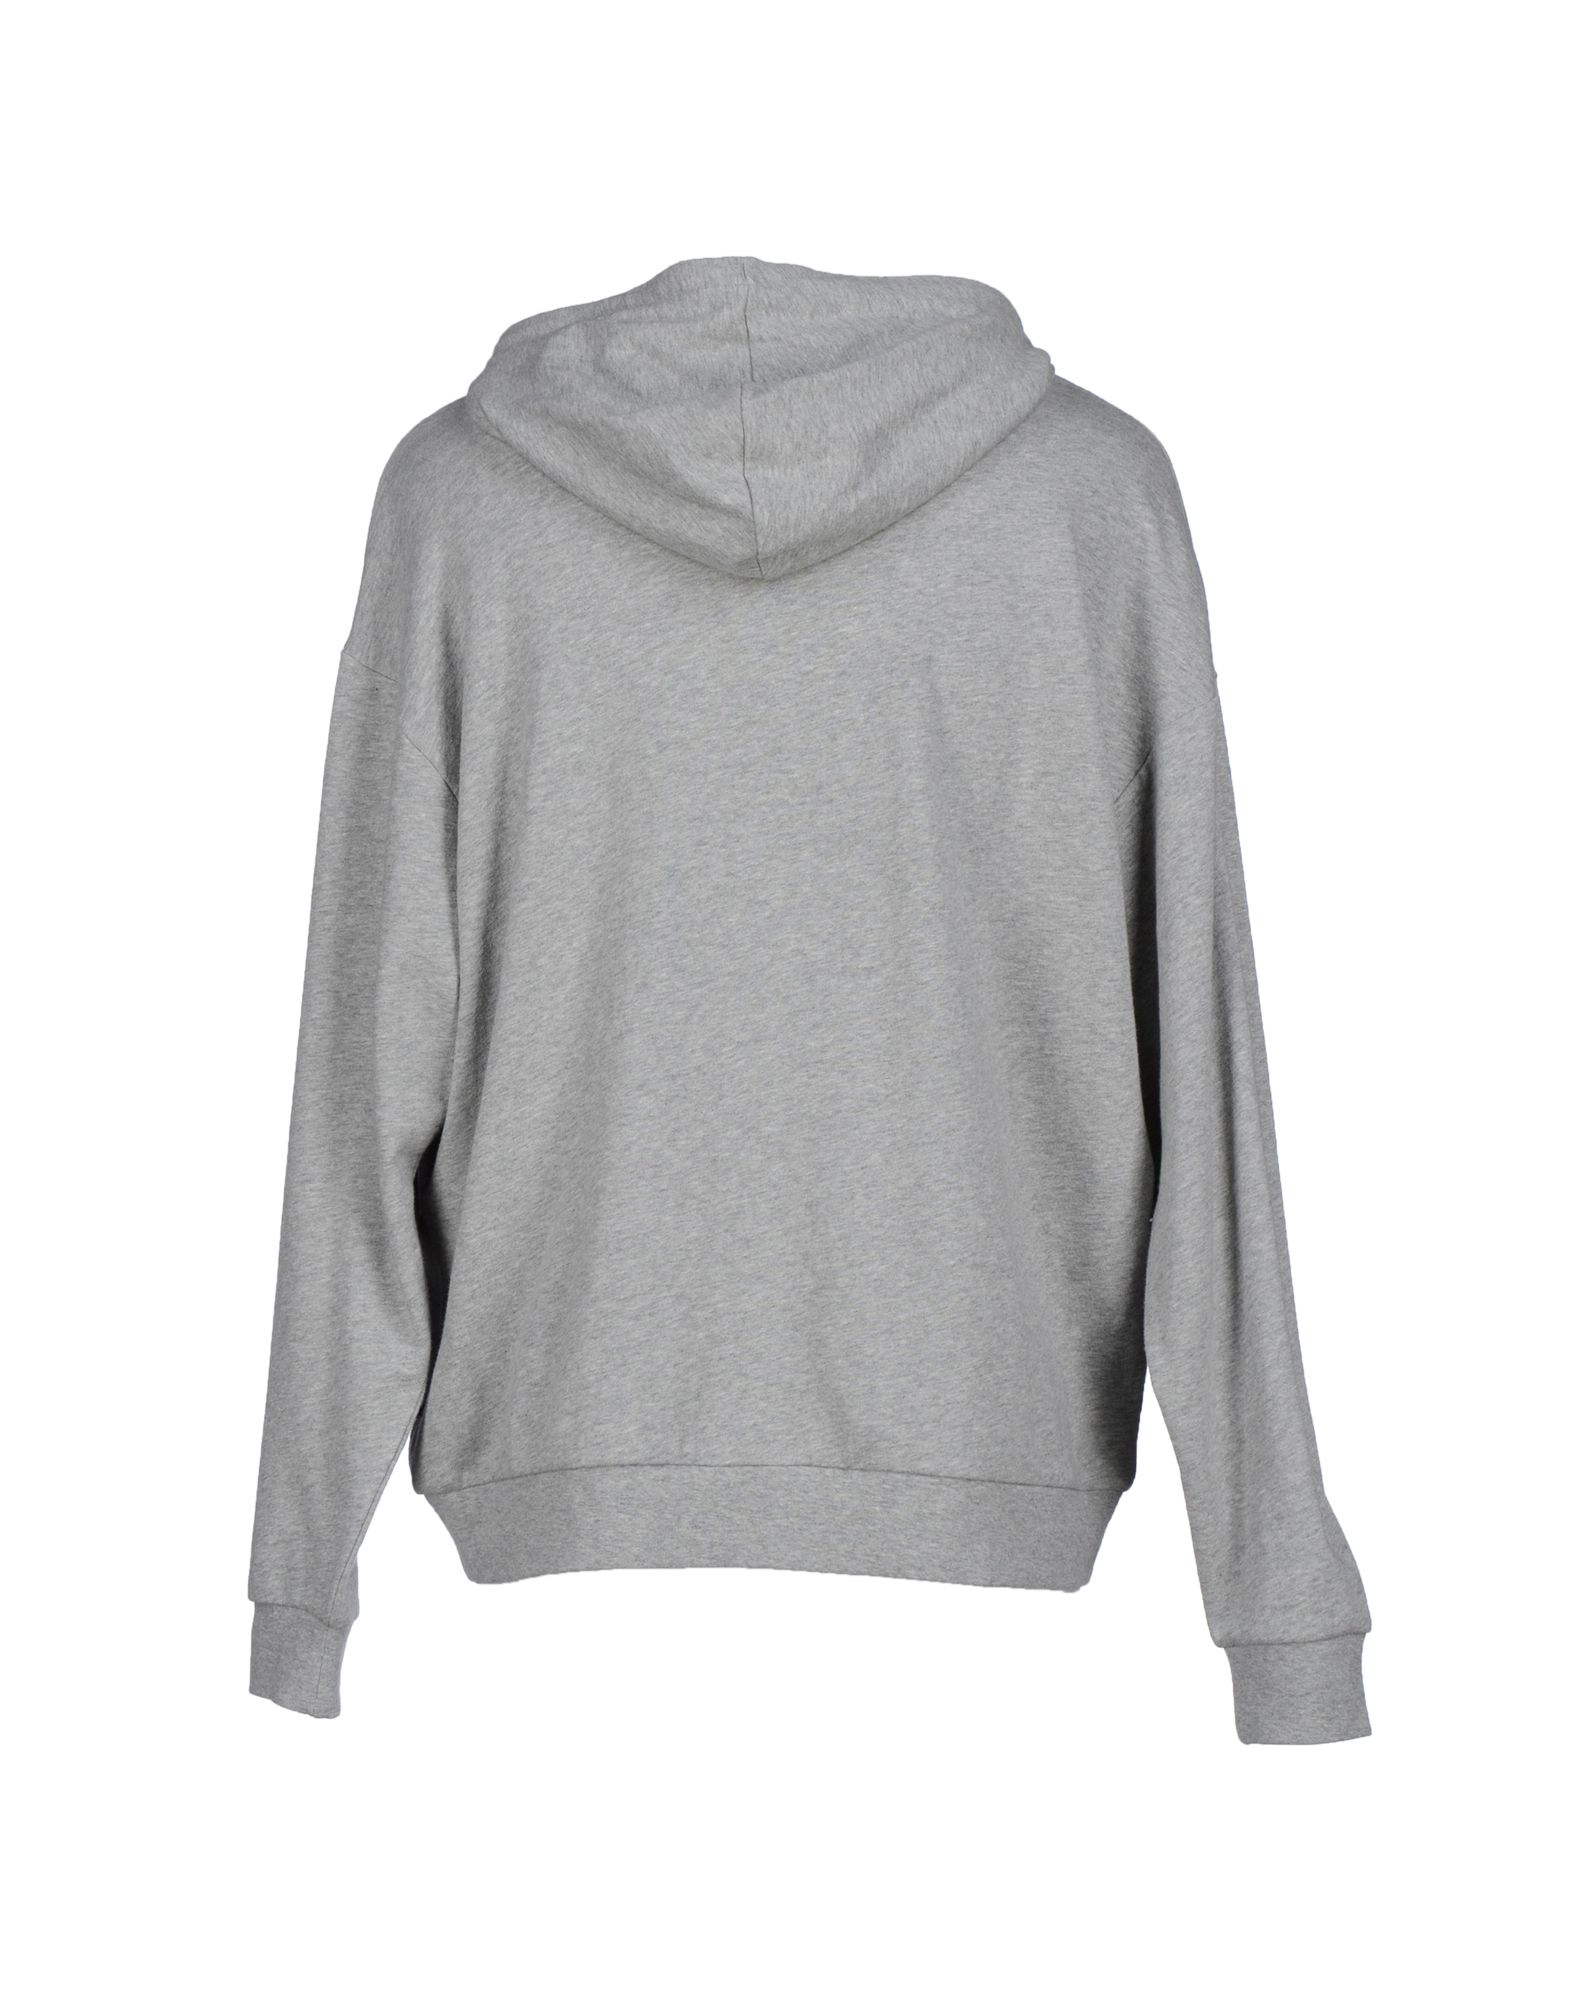 Looking for wholesale bulk discount gray hoodie walmart cheap online drop shipping? housraeg.gq offers a large selection of discount cheap gray hoodie walmart at a fraction of the retail price.